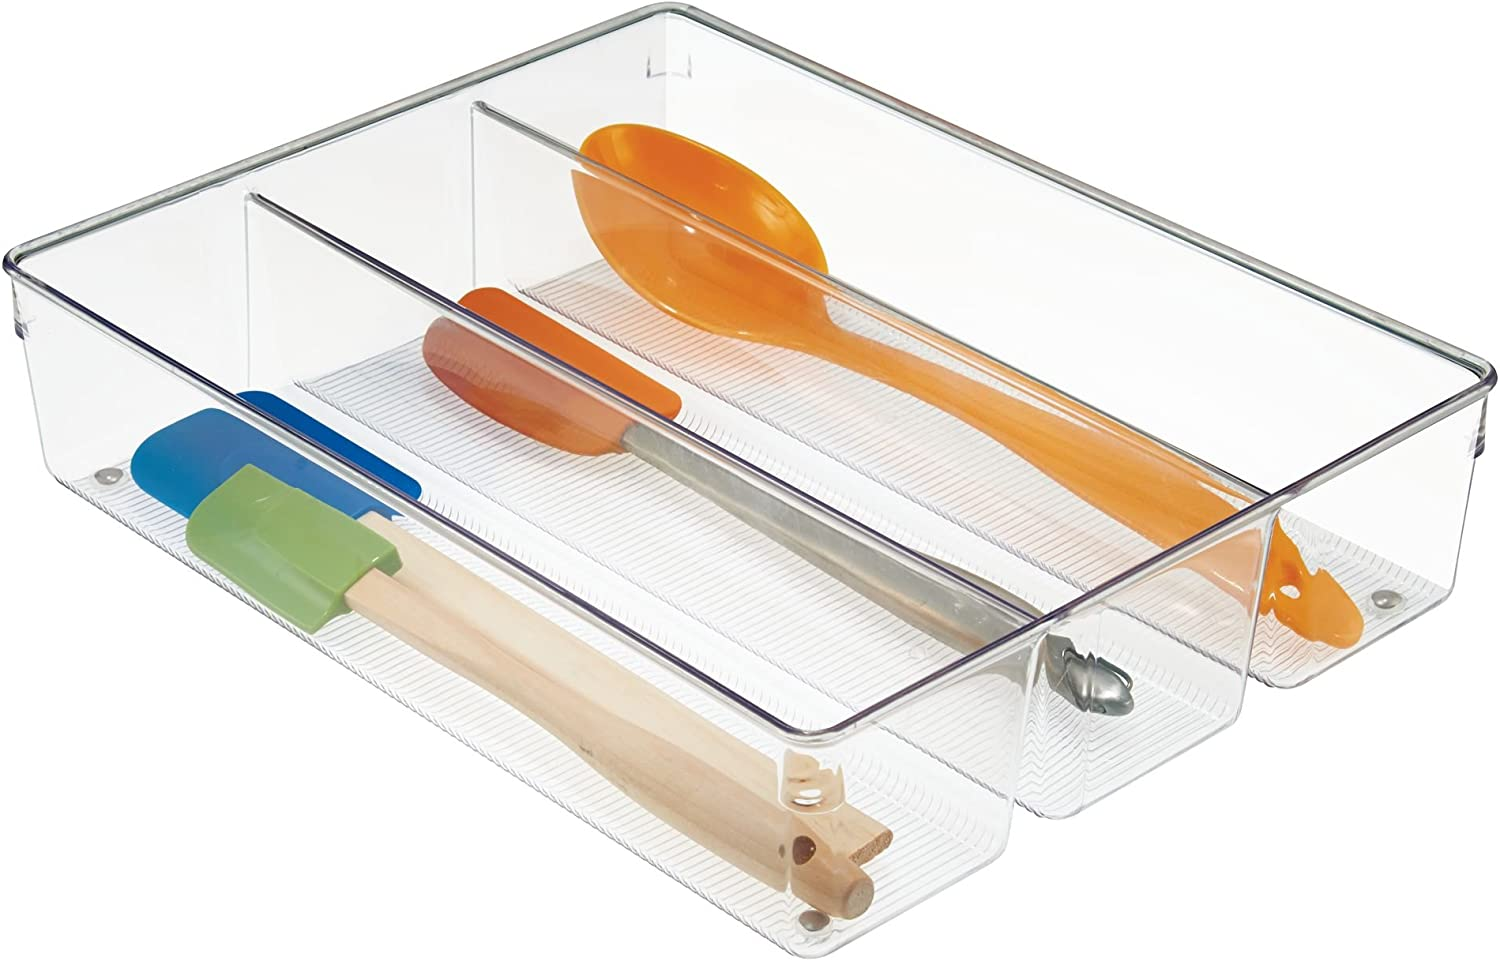 iDesign Linus Kitchen Drawer Organizer for Silverware, Spatulas, Gadgets - Clear